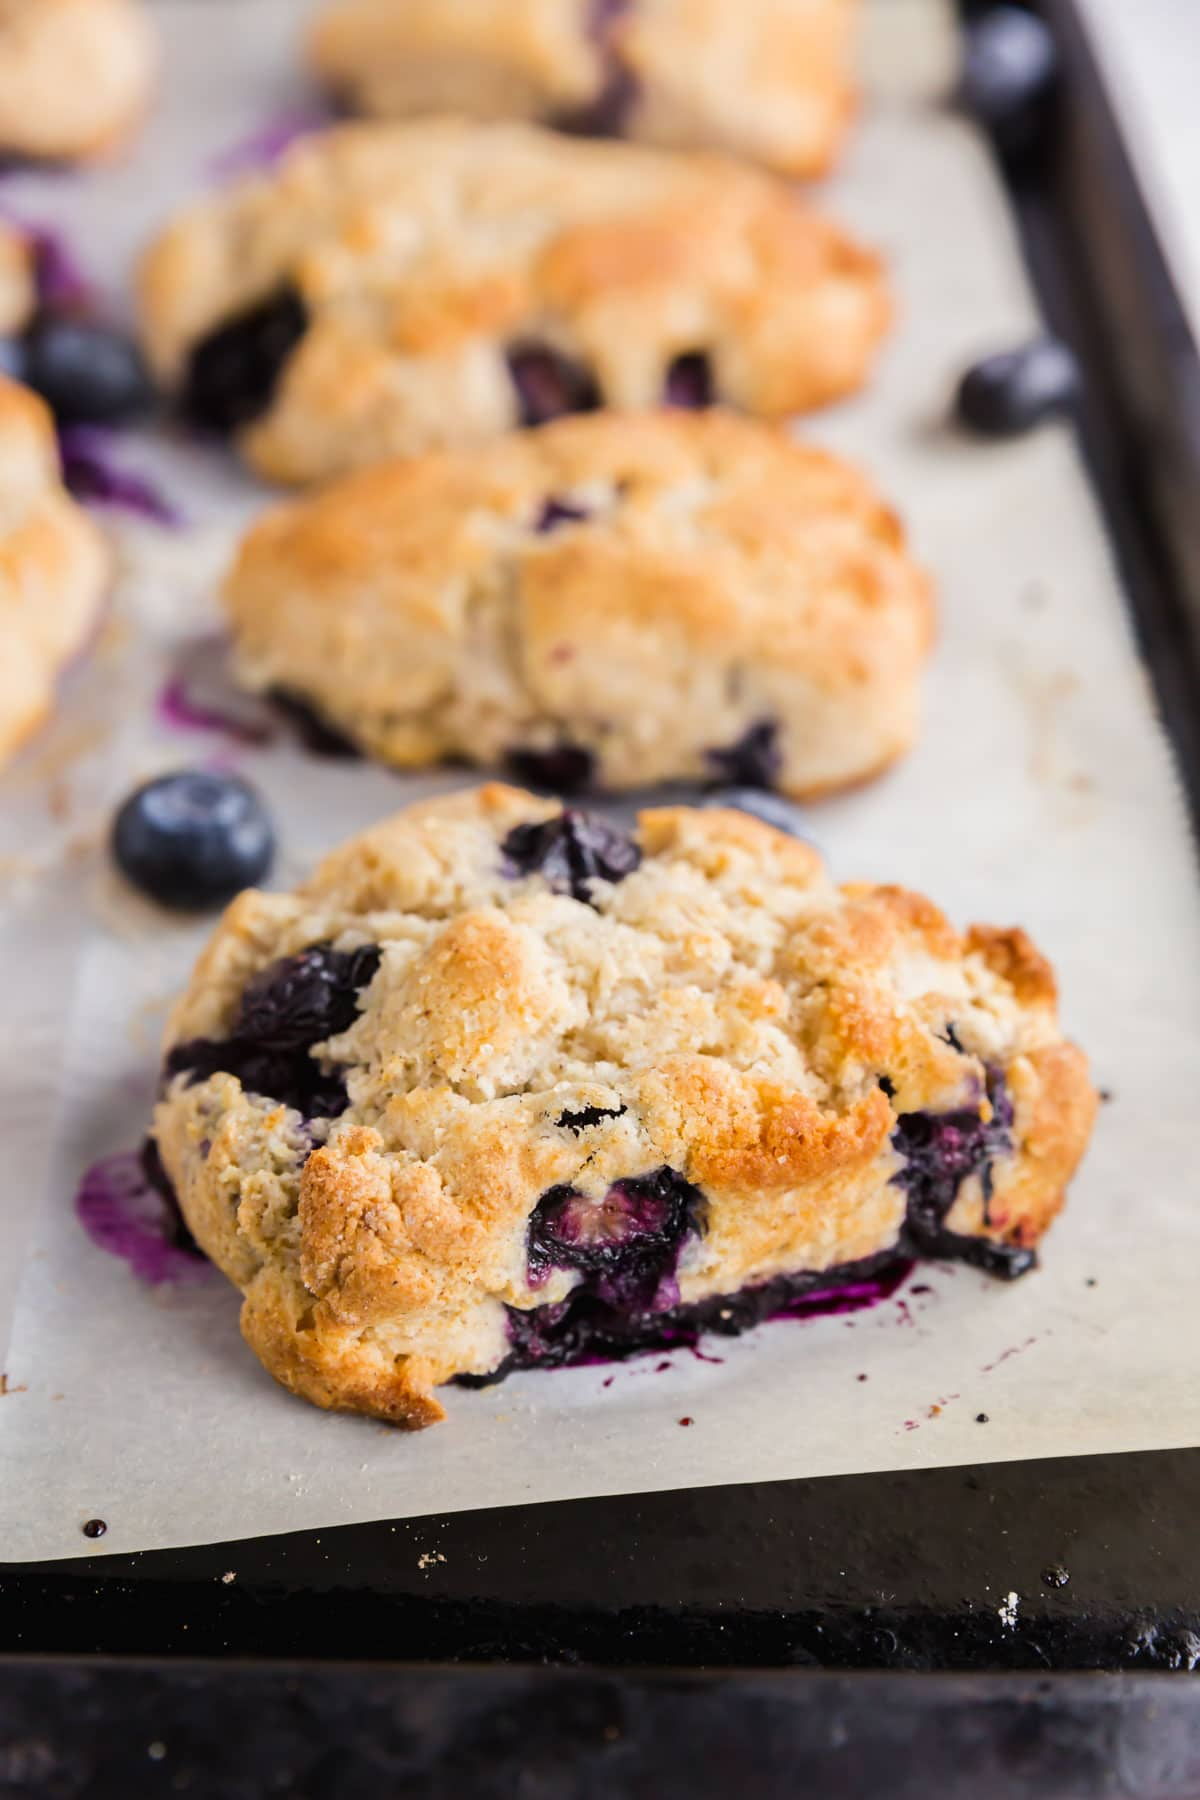 A baking sheet with gluten-free blueberry scones fresh from the oven.